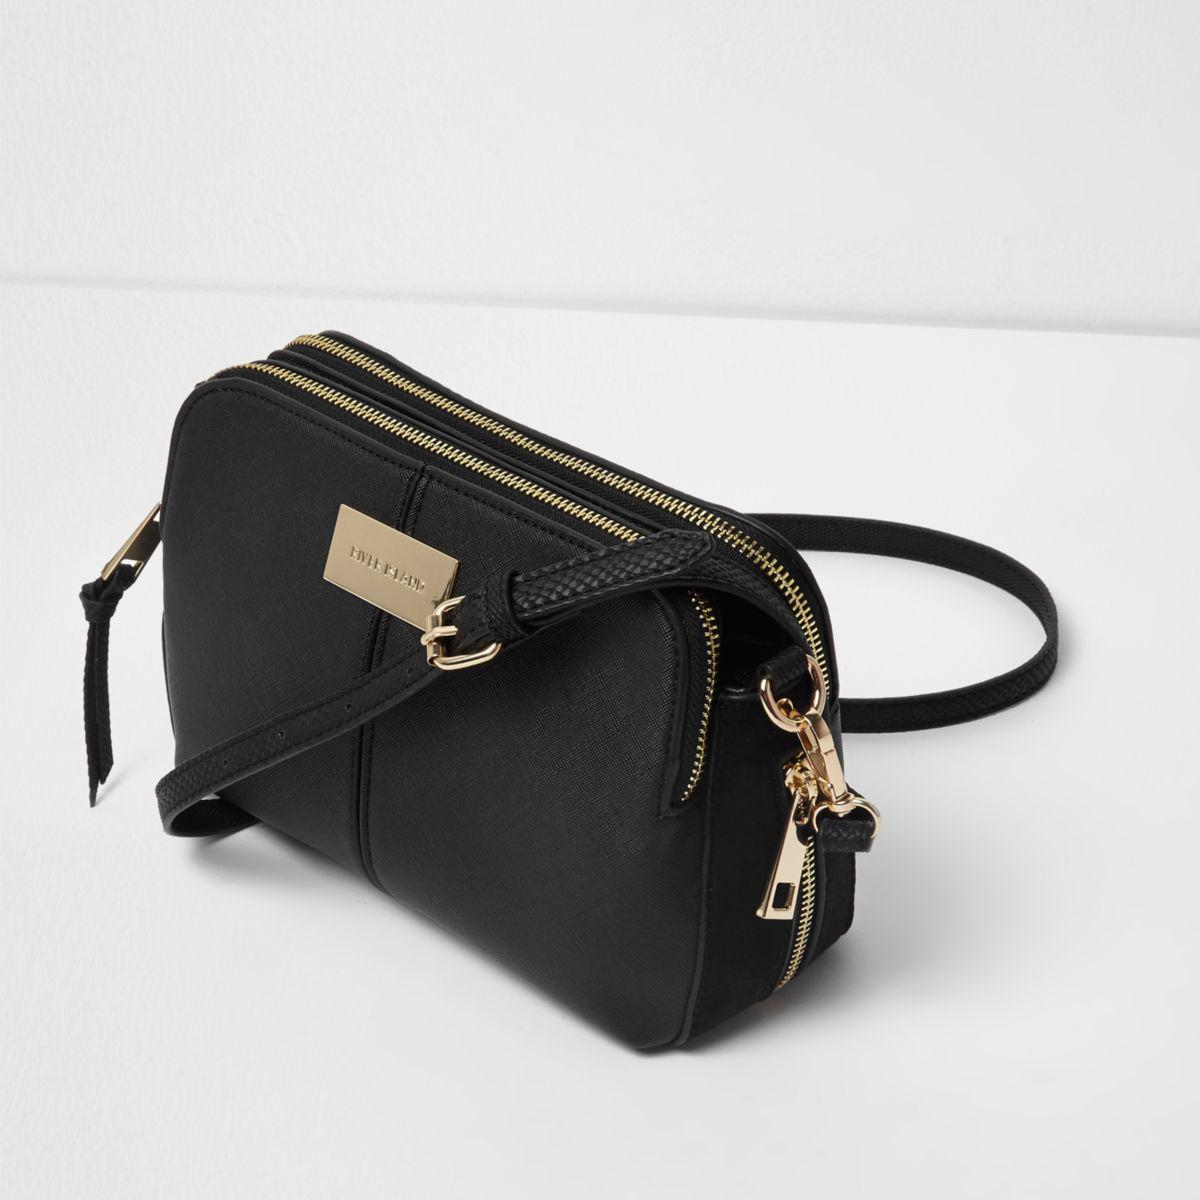 d6f0a9052 River Island Black Triple Compartment Cross Body Bag in Black - Lyst